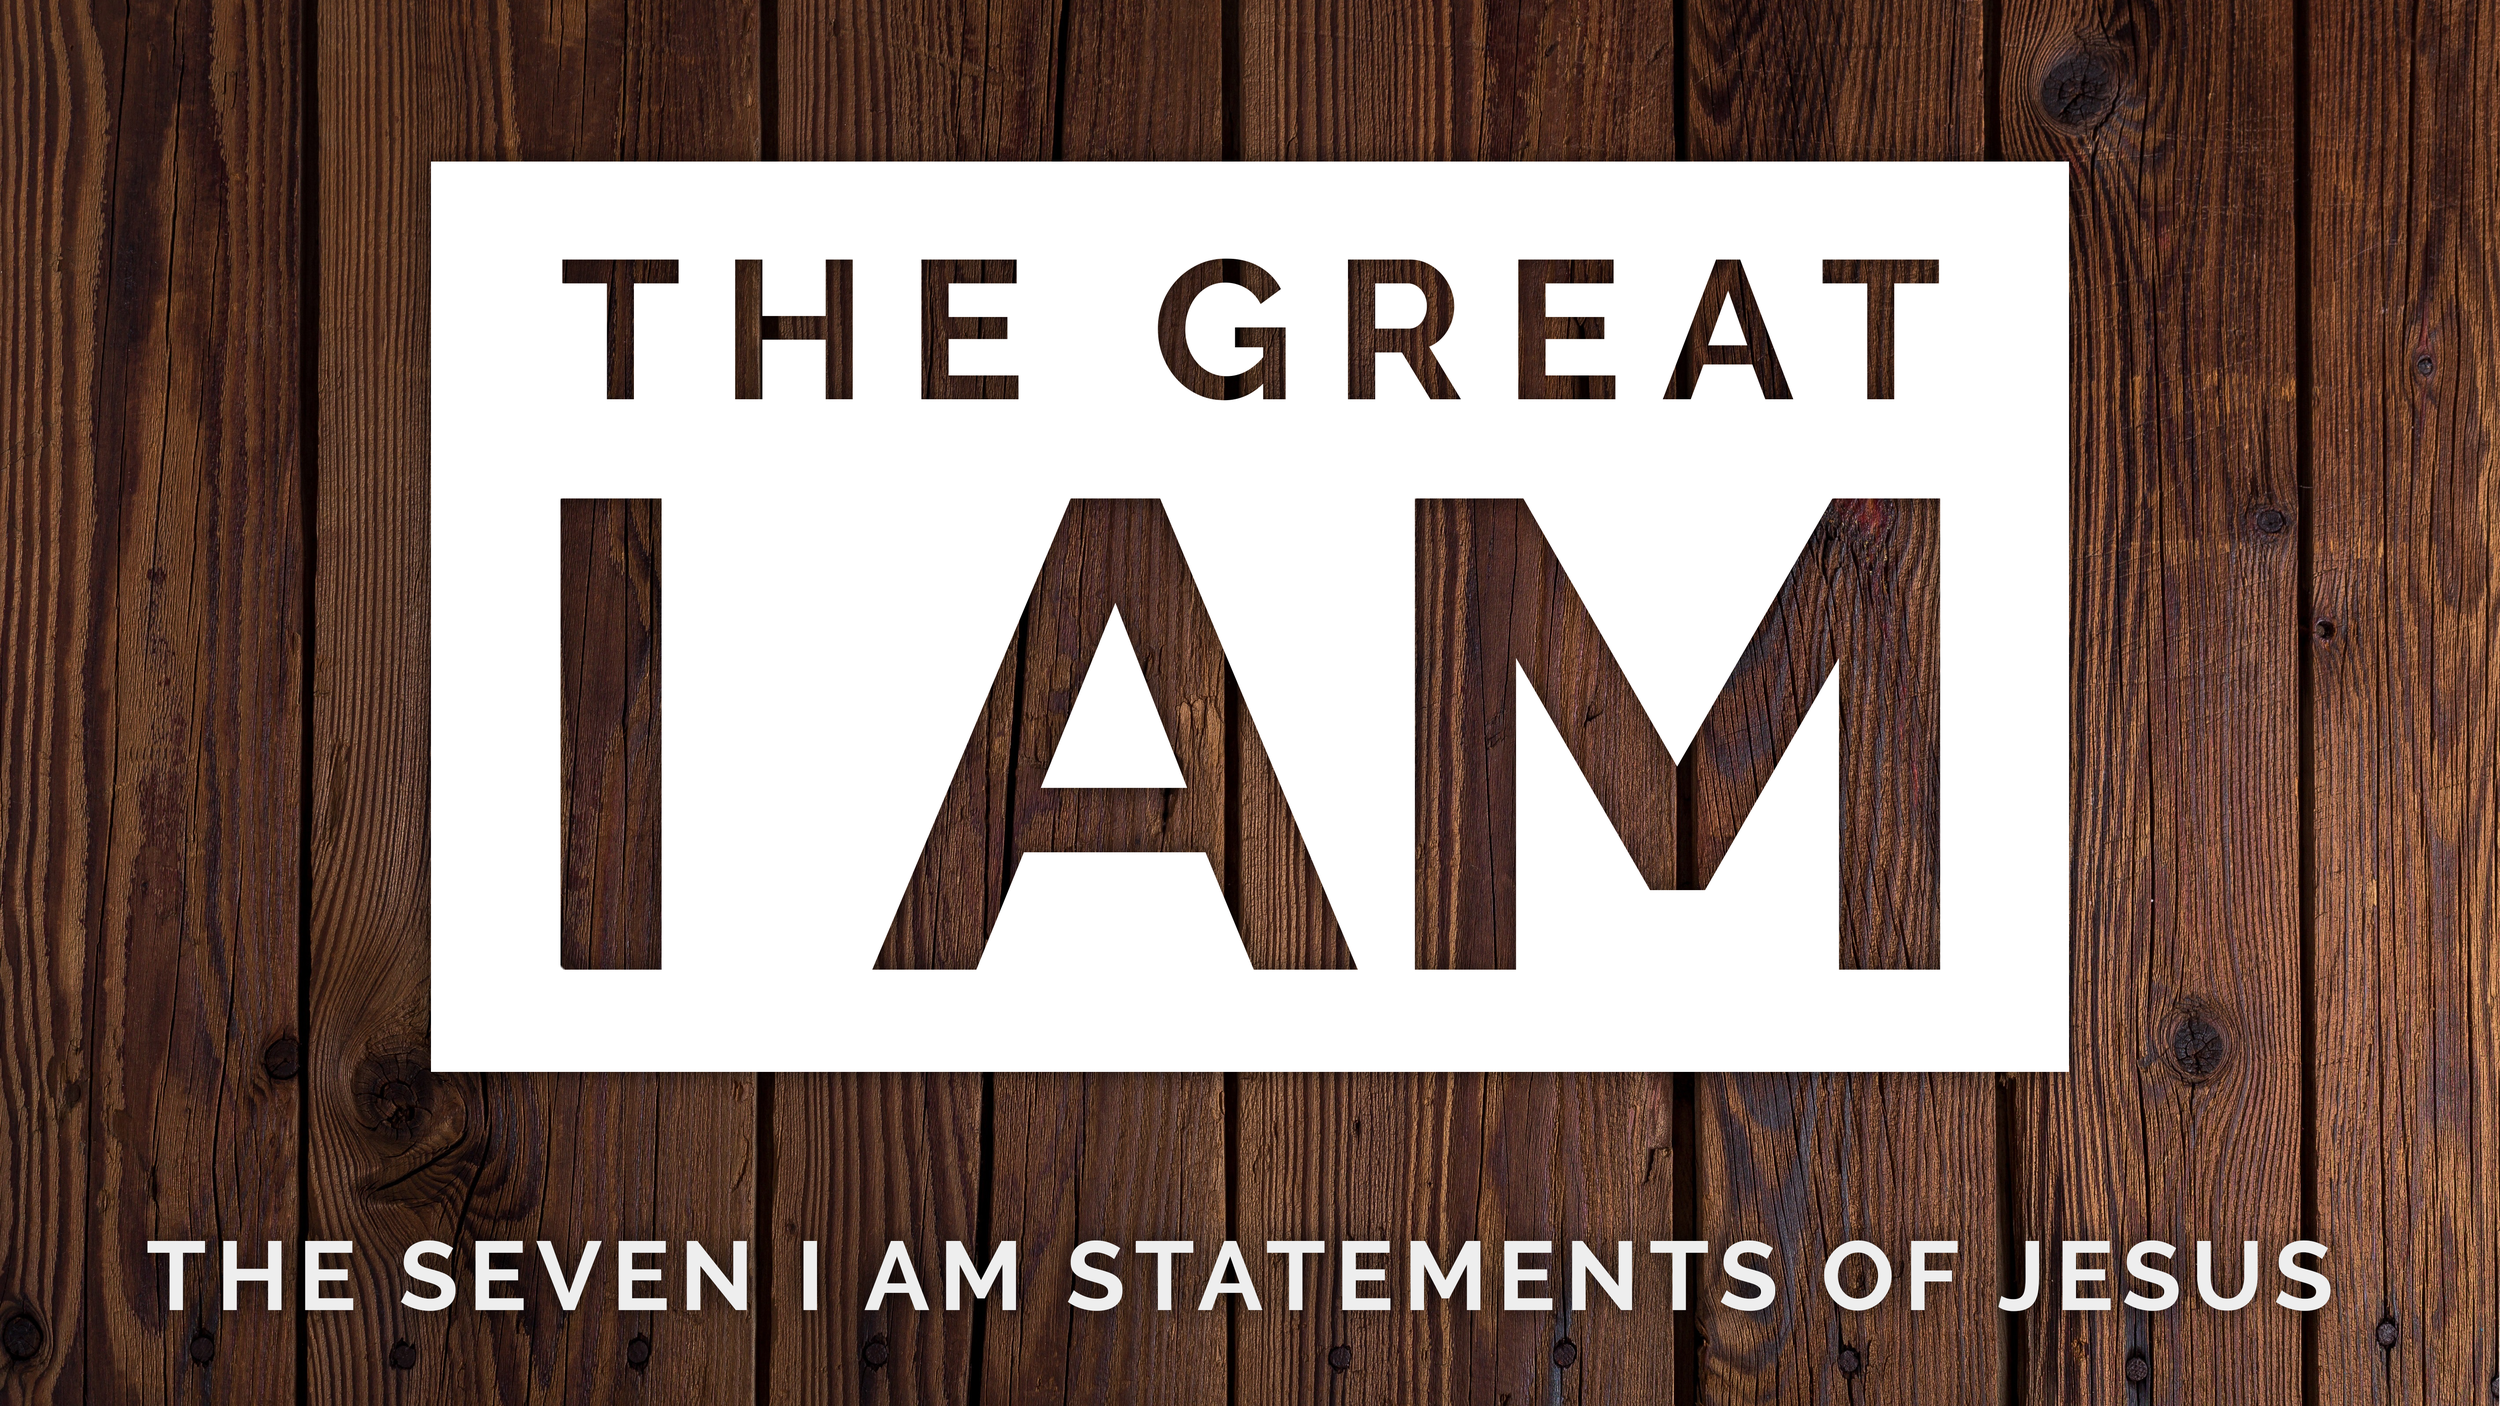 The Great I AM - 1. The Bread of Life2. The Good Shepherd3. The Gate4. The Resurrection and the Life5. The Vine6. The Way, the Truth, and the Life7. The Light of the World